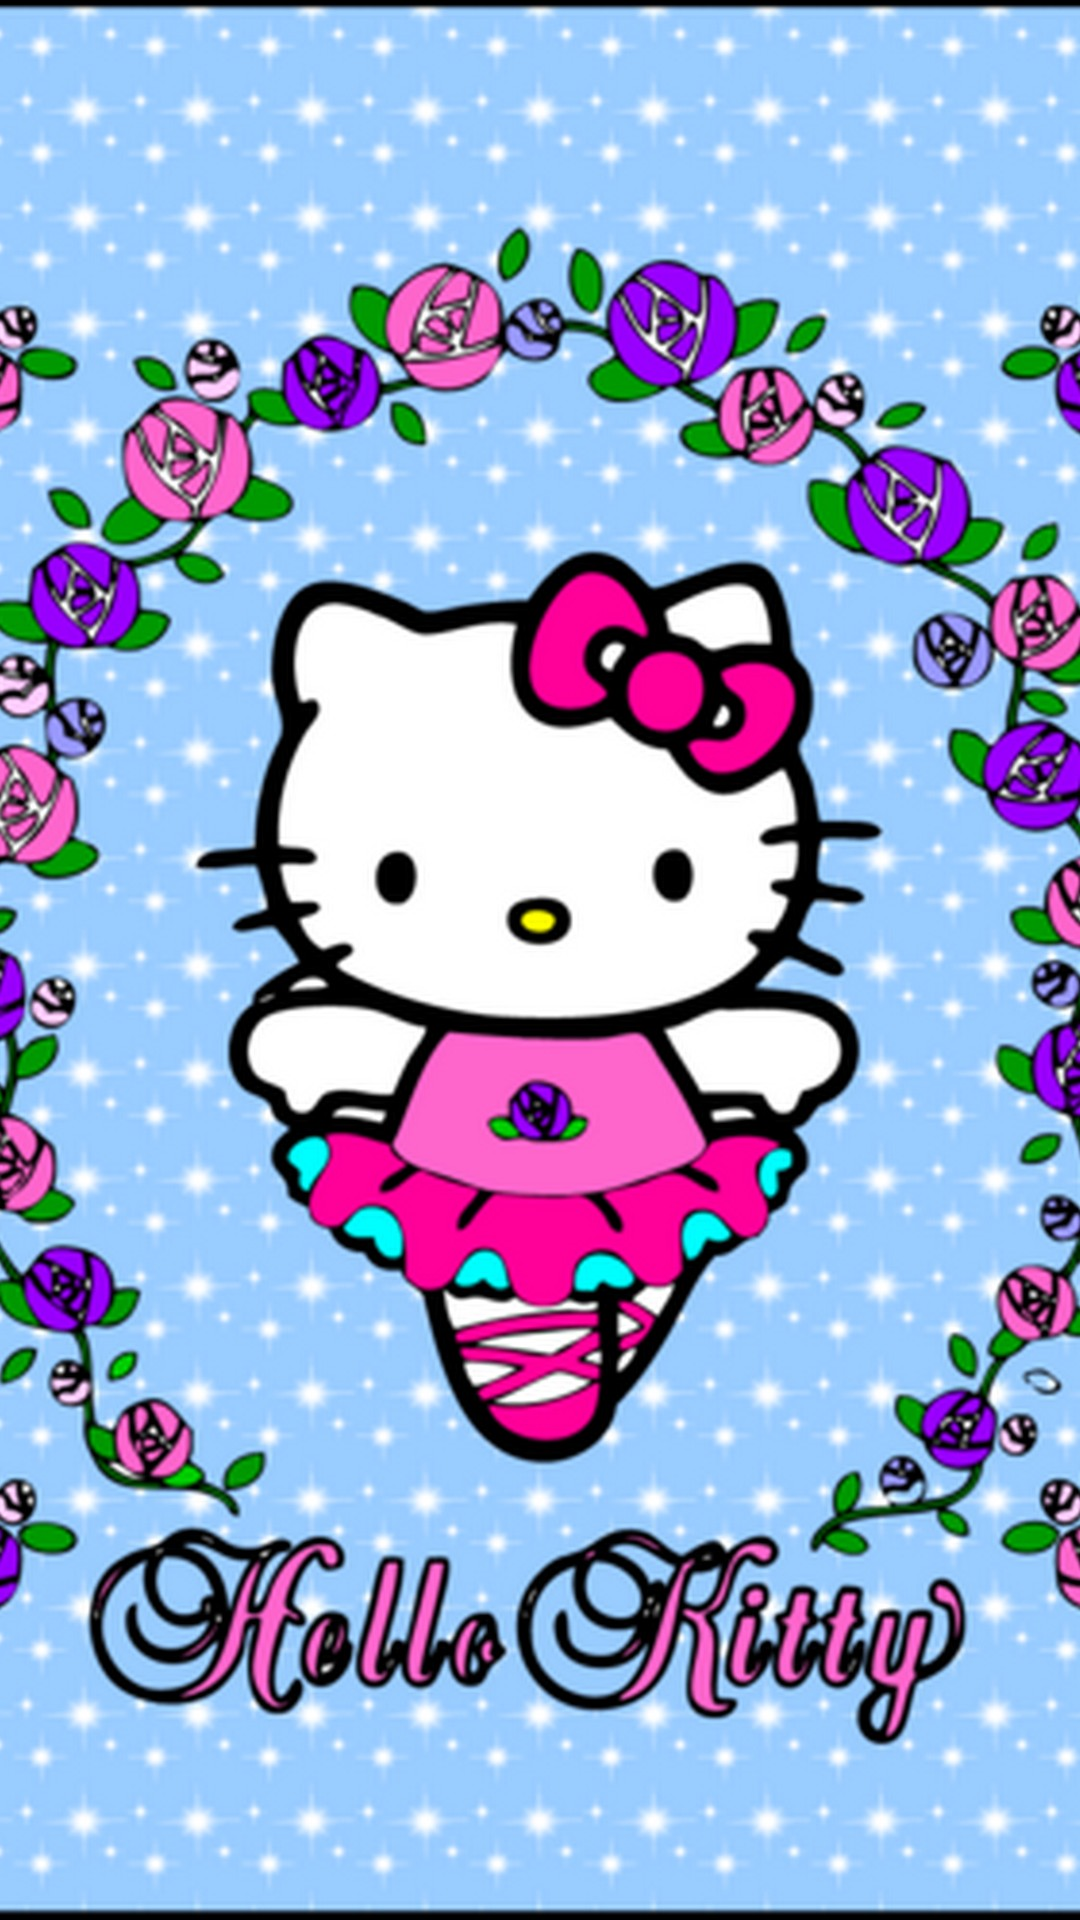 Wallpaper Sanrio Hello Kitty Android   2019 Android Wallpapers 1080x1920